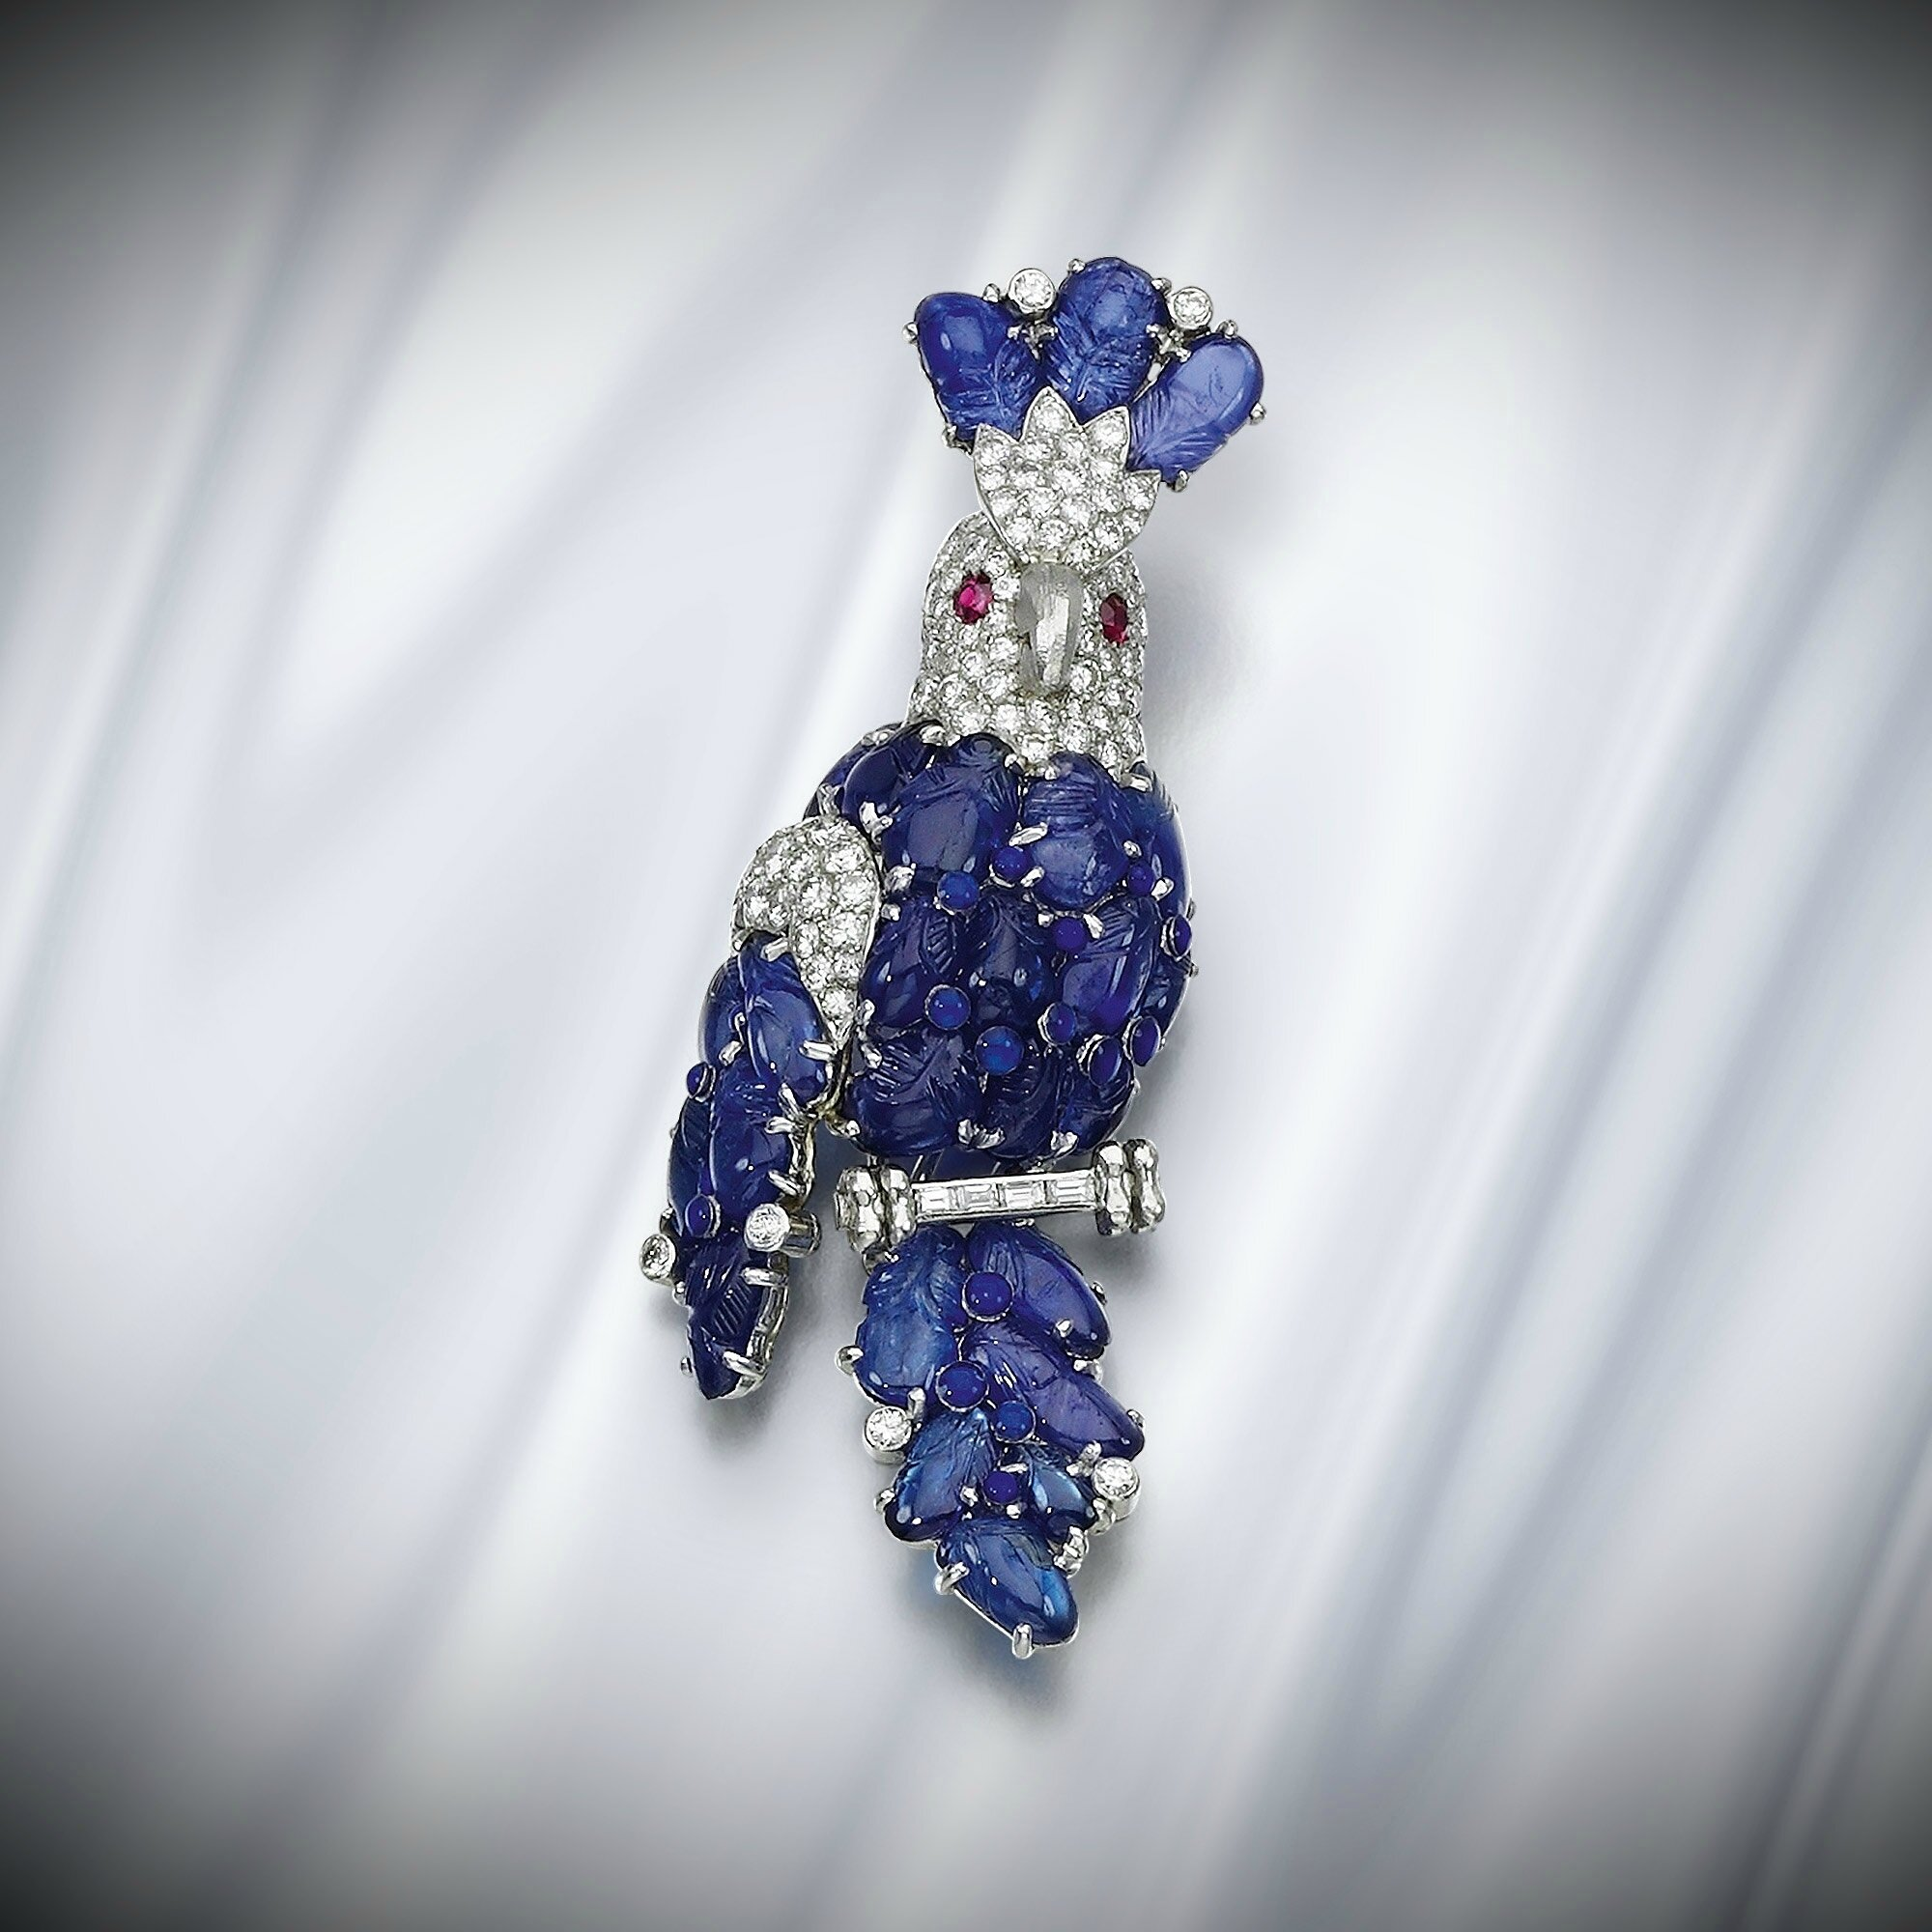 panth sapphire pinterest diamond cartier pin ring and re